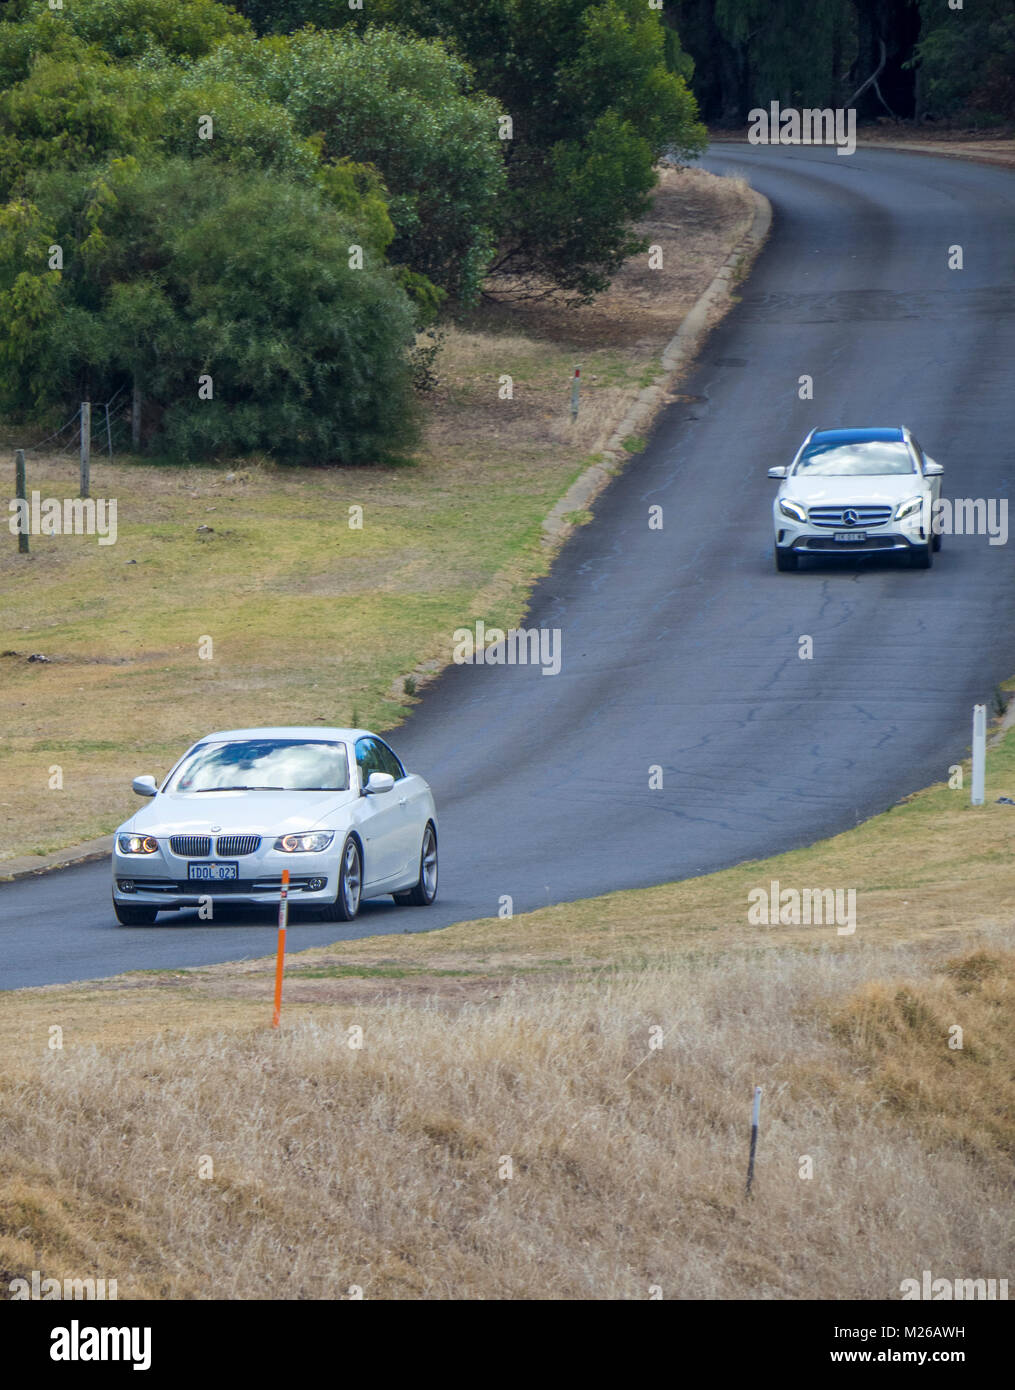 A white Mercedes GLA 180  and a white BMW vehicles driving on a country road in Margaret River, WA, Australia. - Stock Image